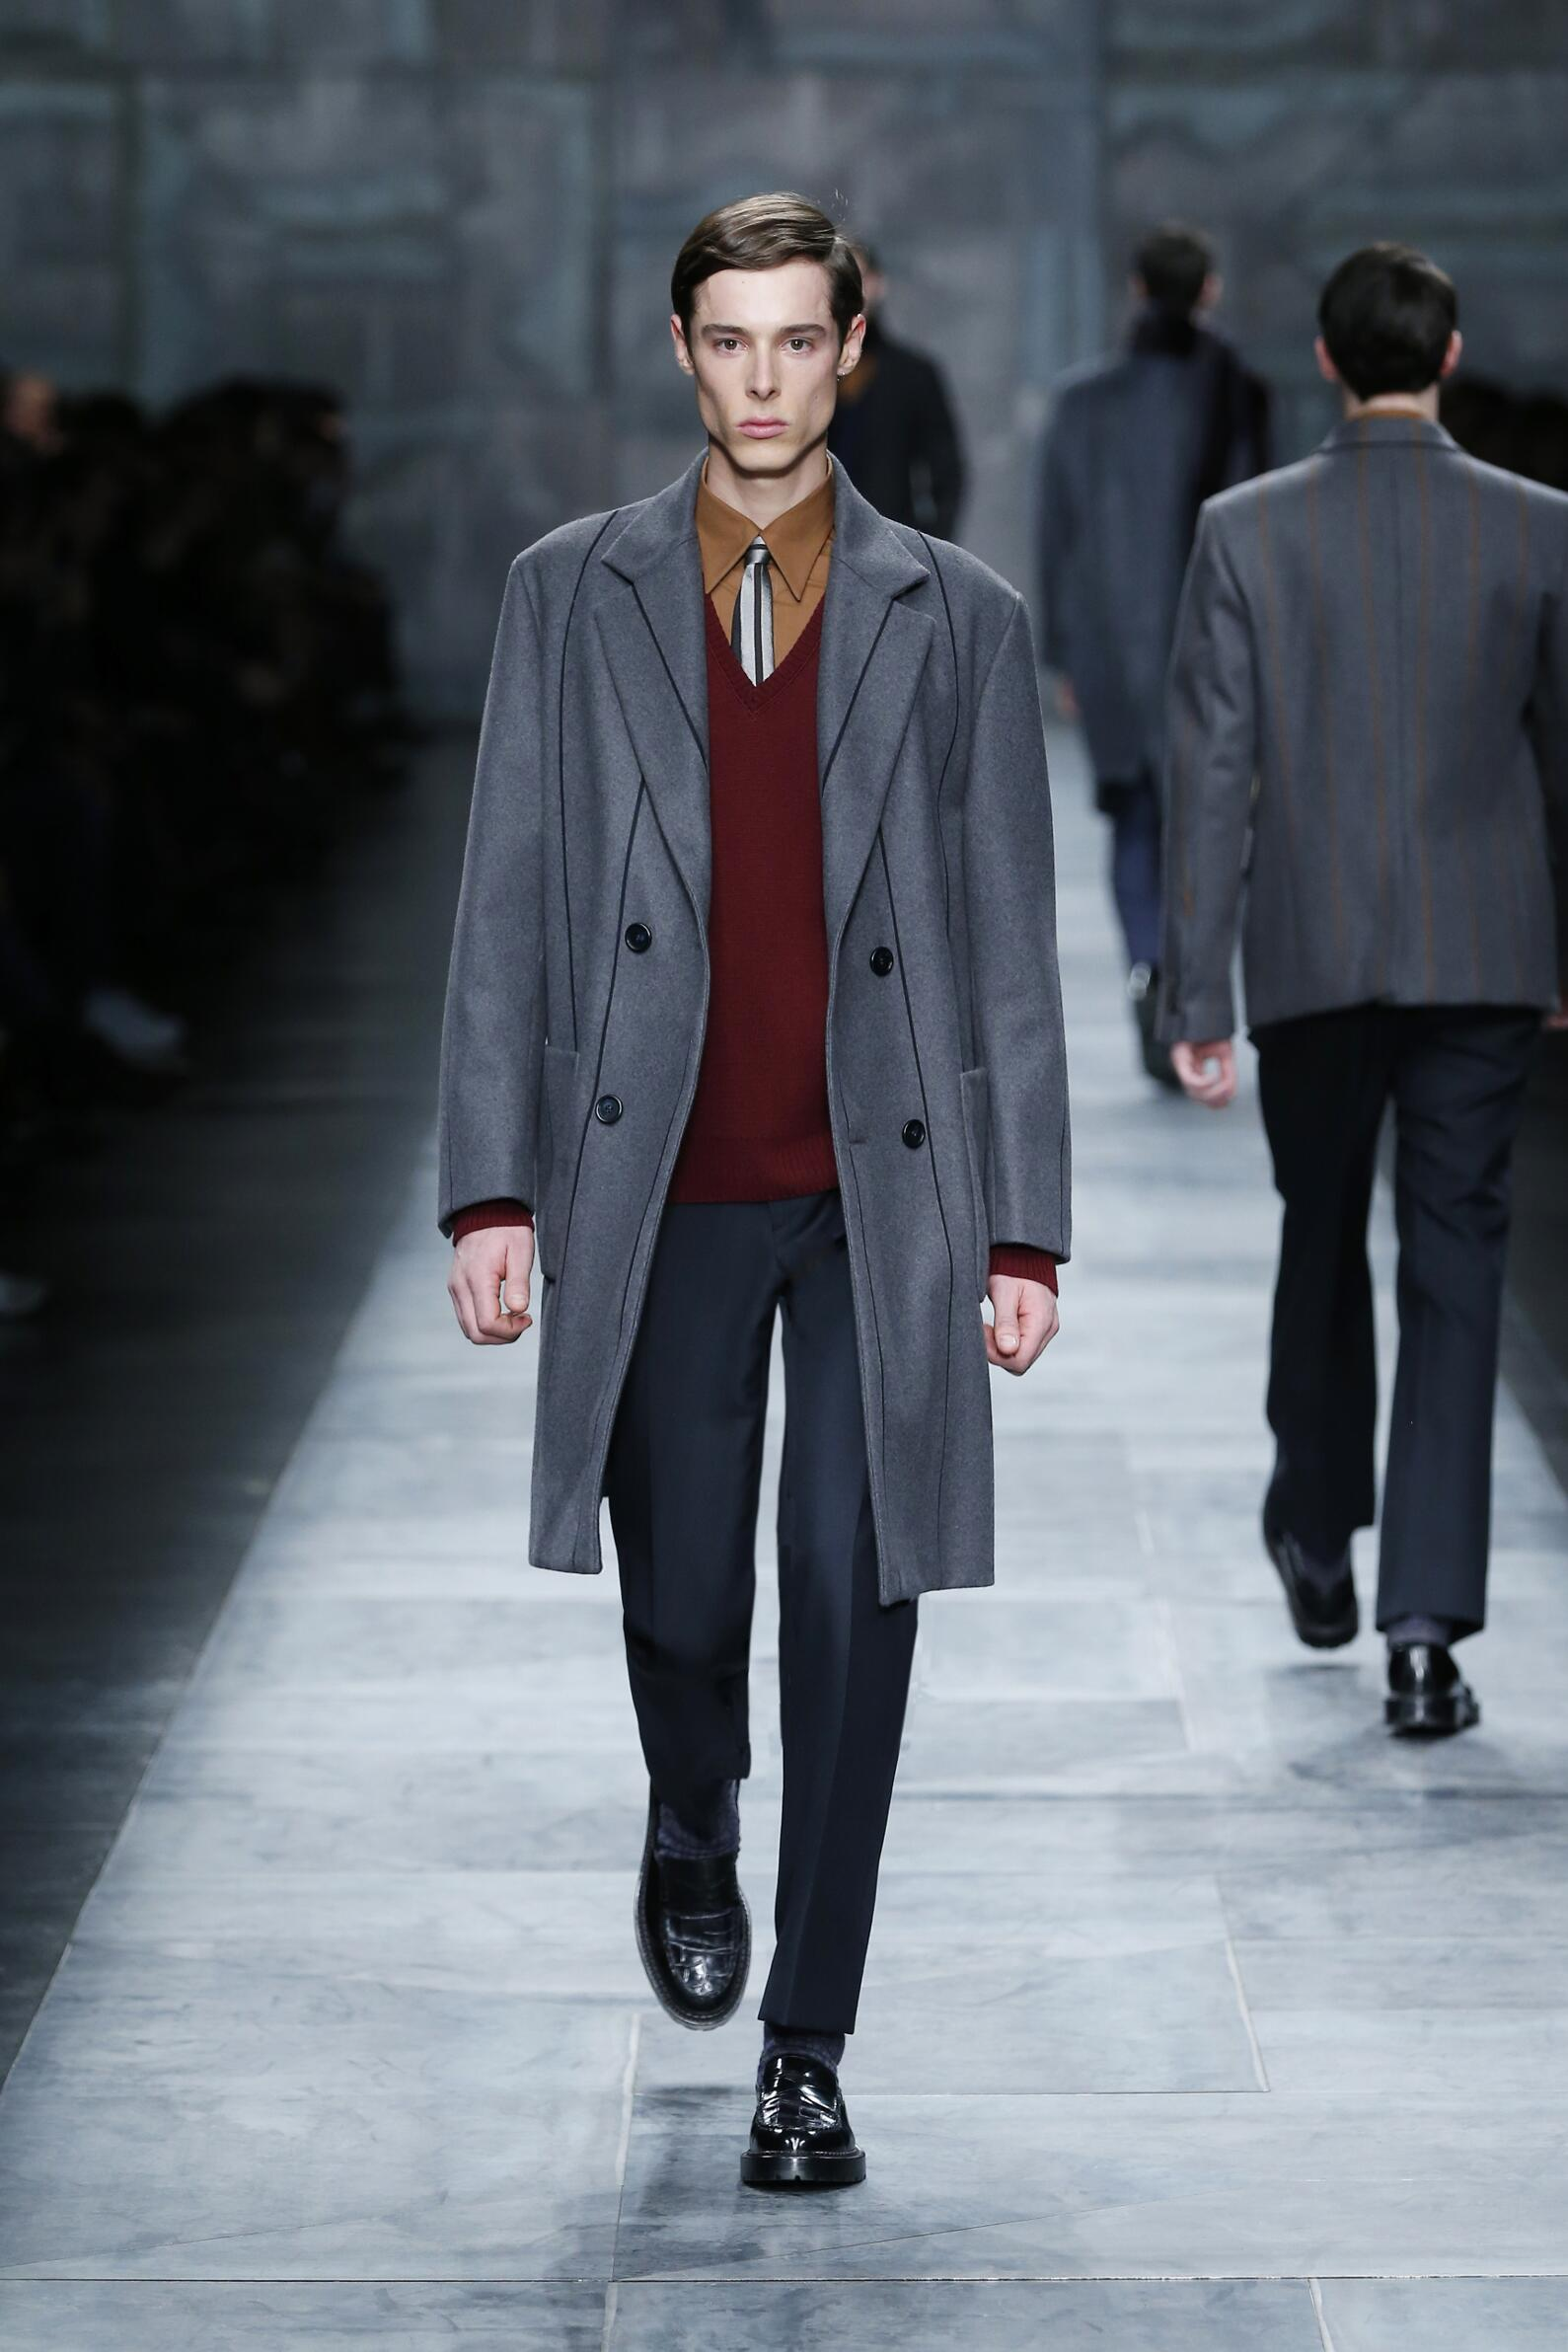 Runway Fendi Fall Winter 2015 16 Men's Collection Milano Fashion Week